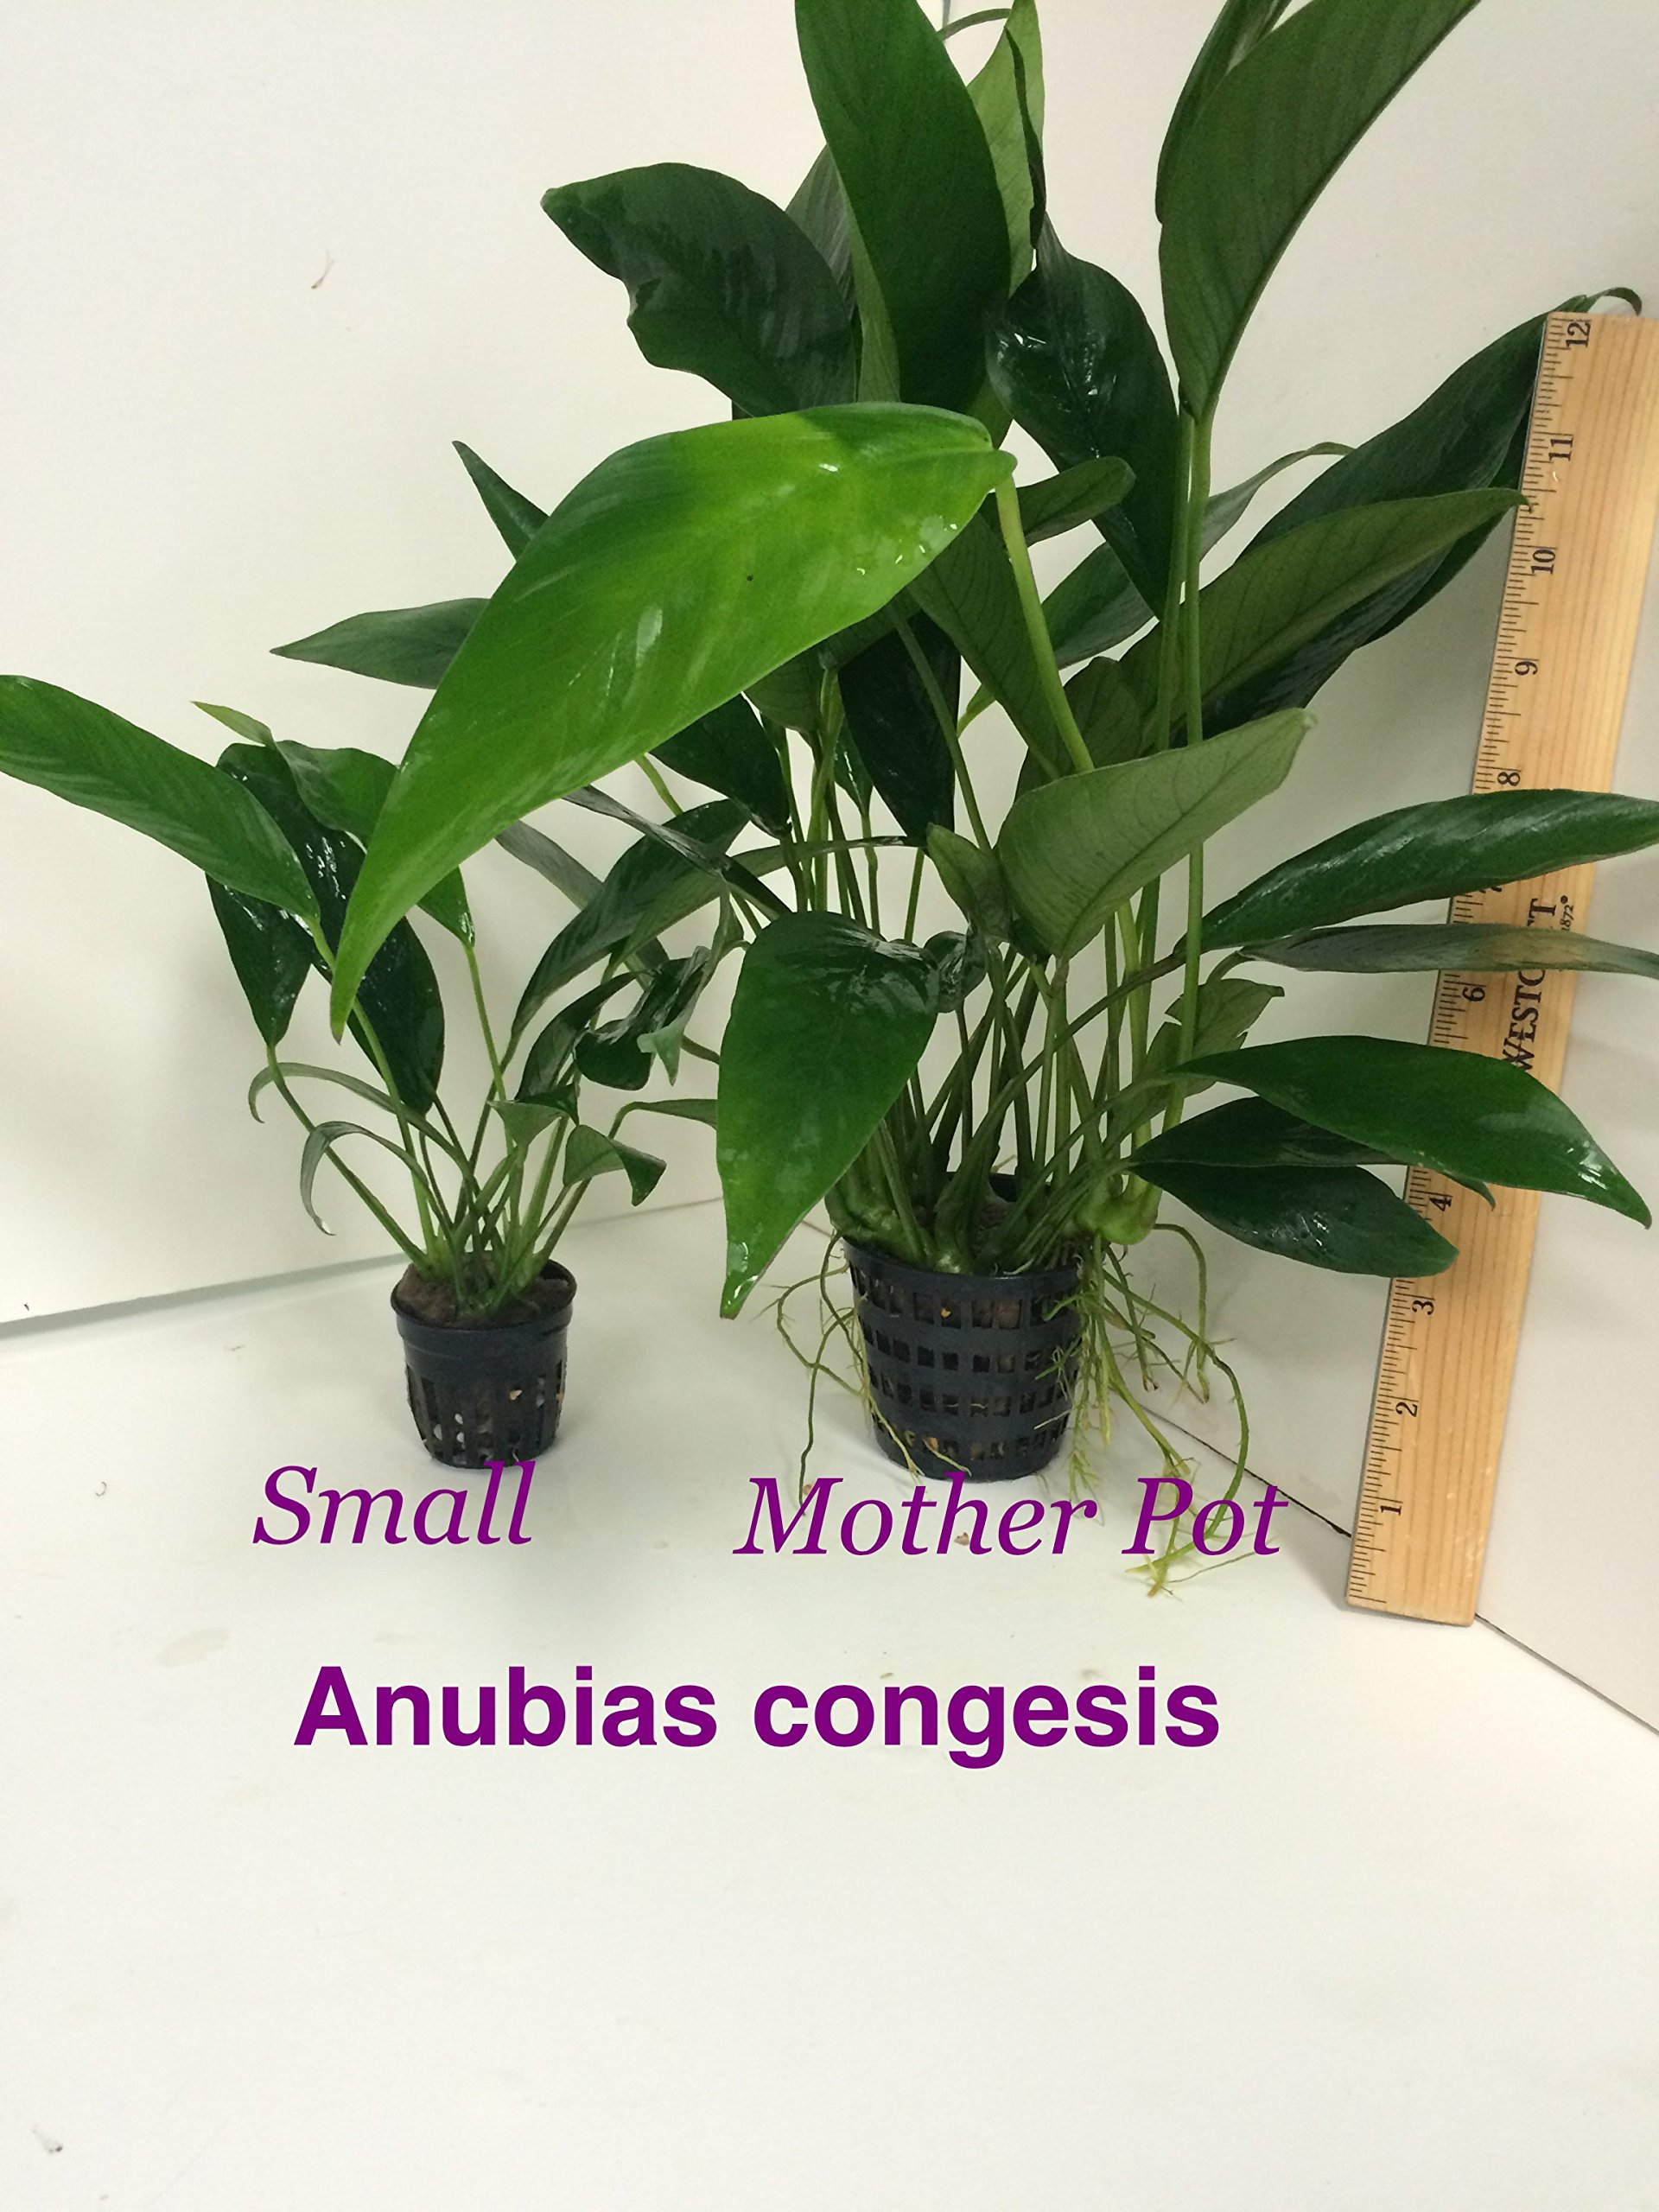 Anubias congensis Mother Pot Plant M005 Live Aquatic Plant by Jayco (Image #4)